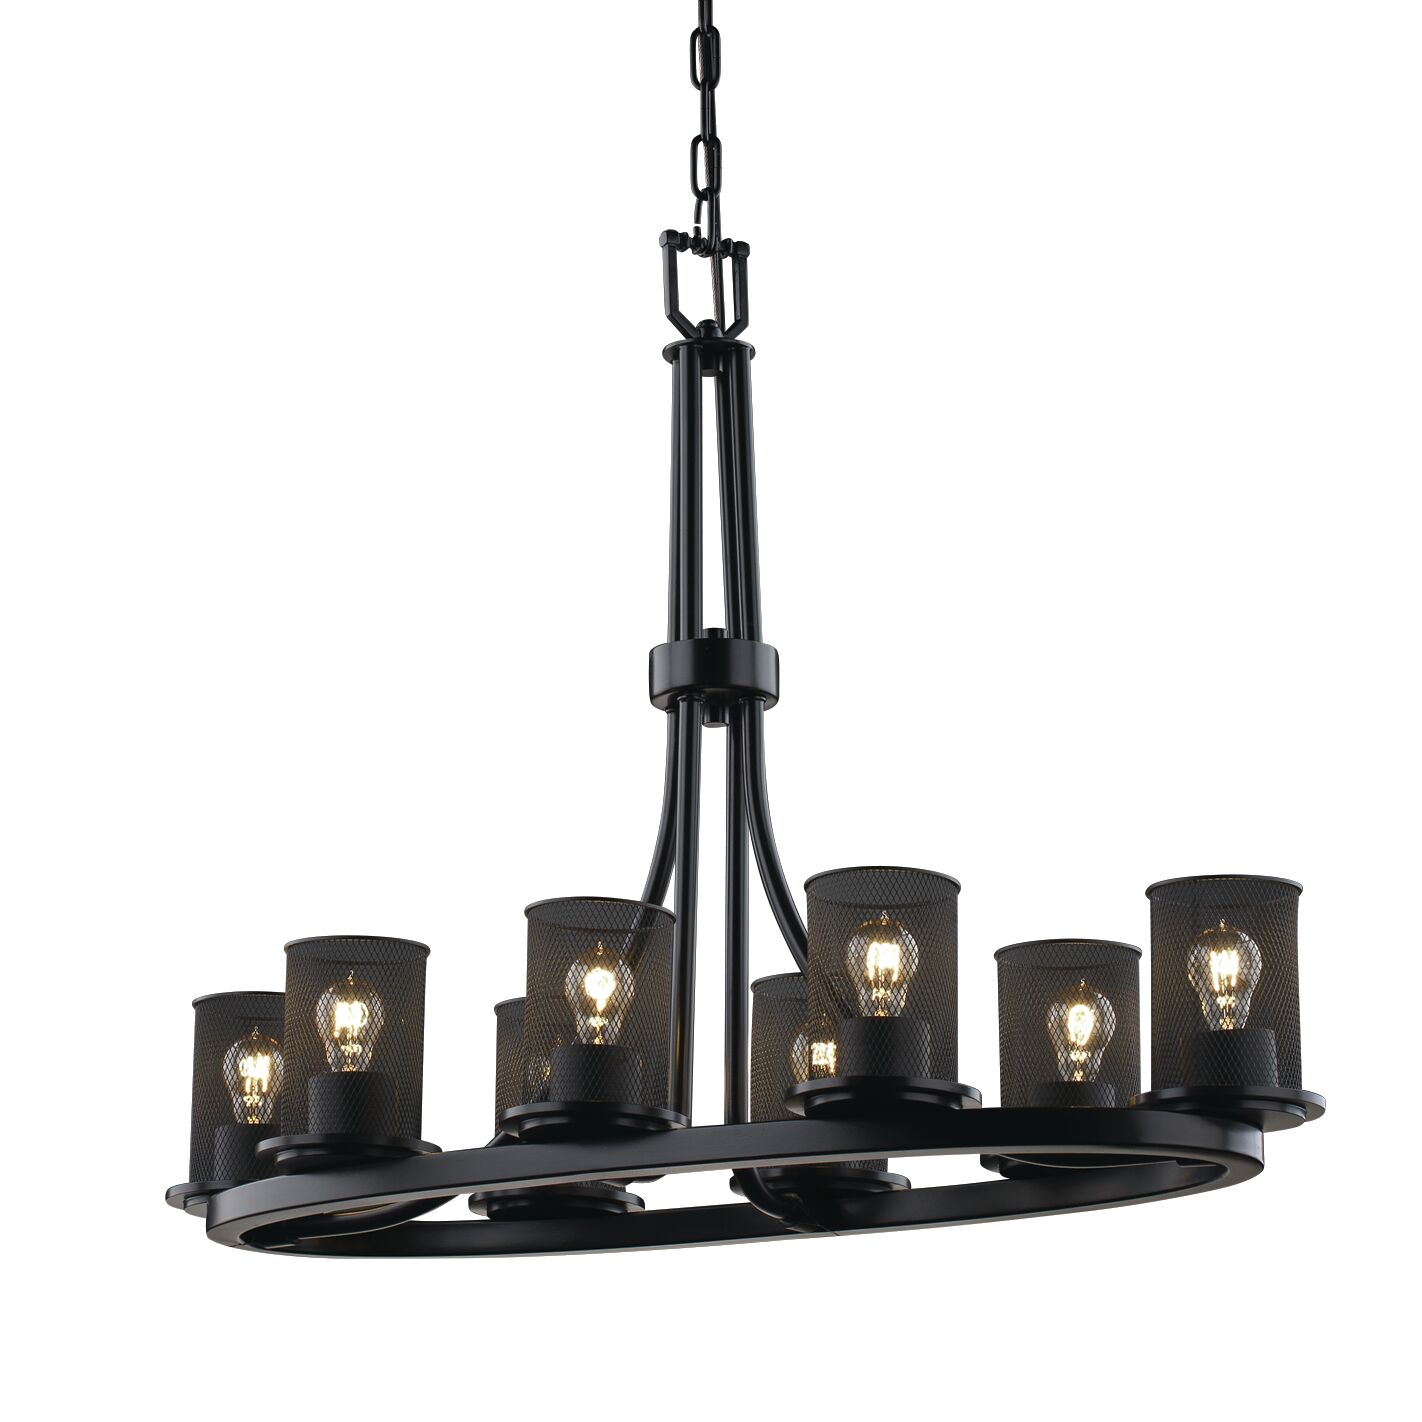 Bennett 8-Light Shaded Chandelier Finish: Matte Black